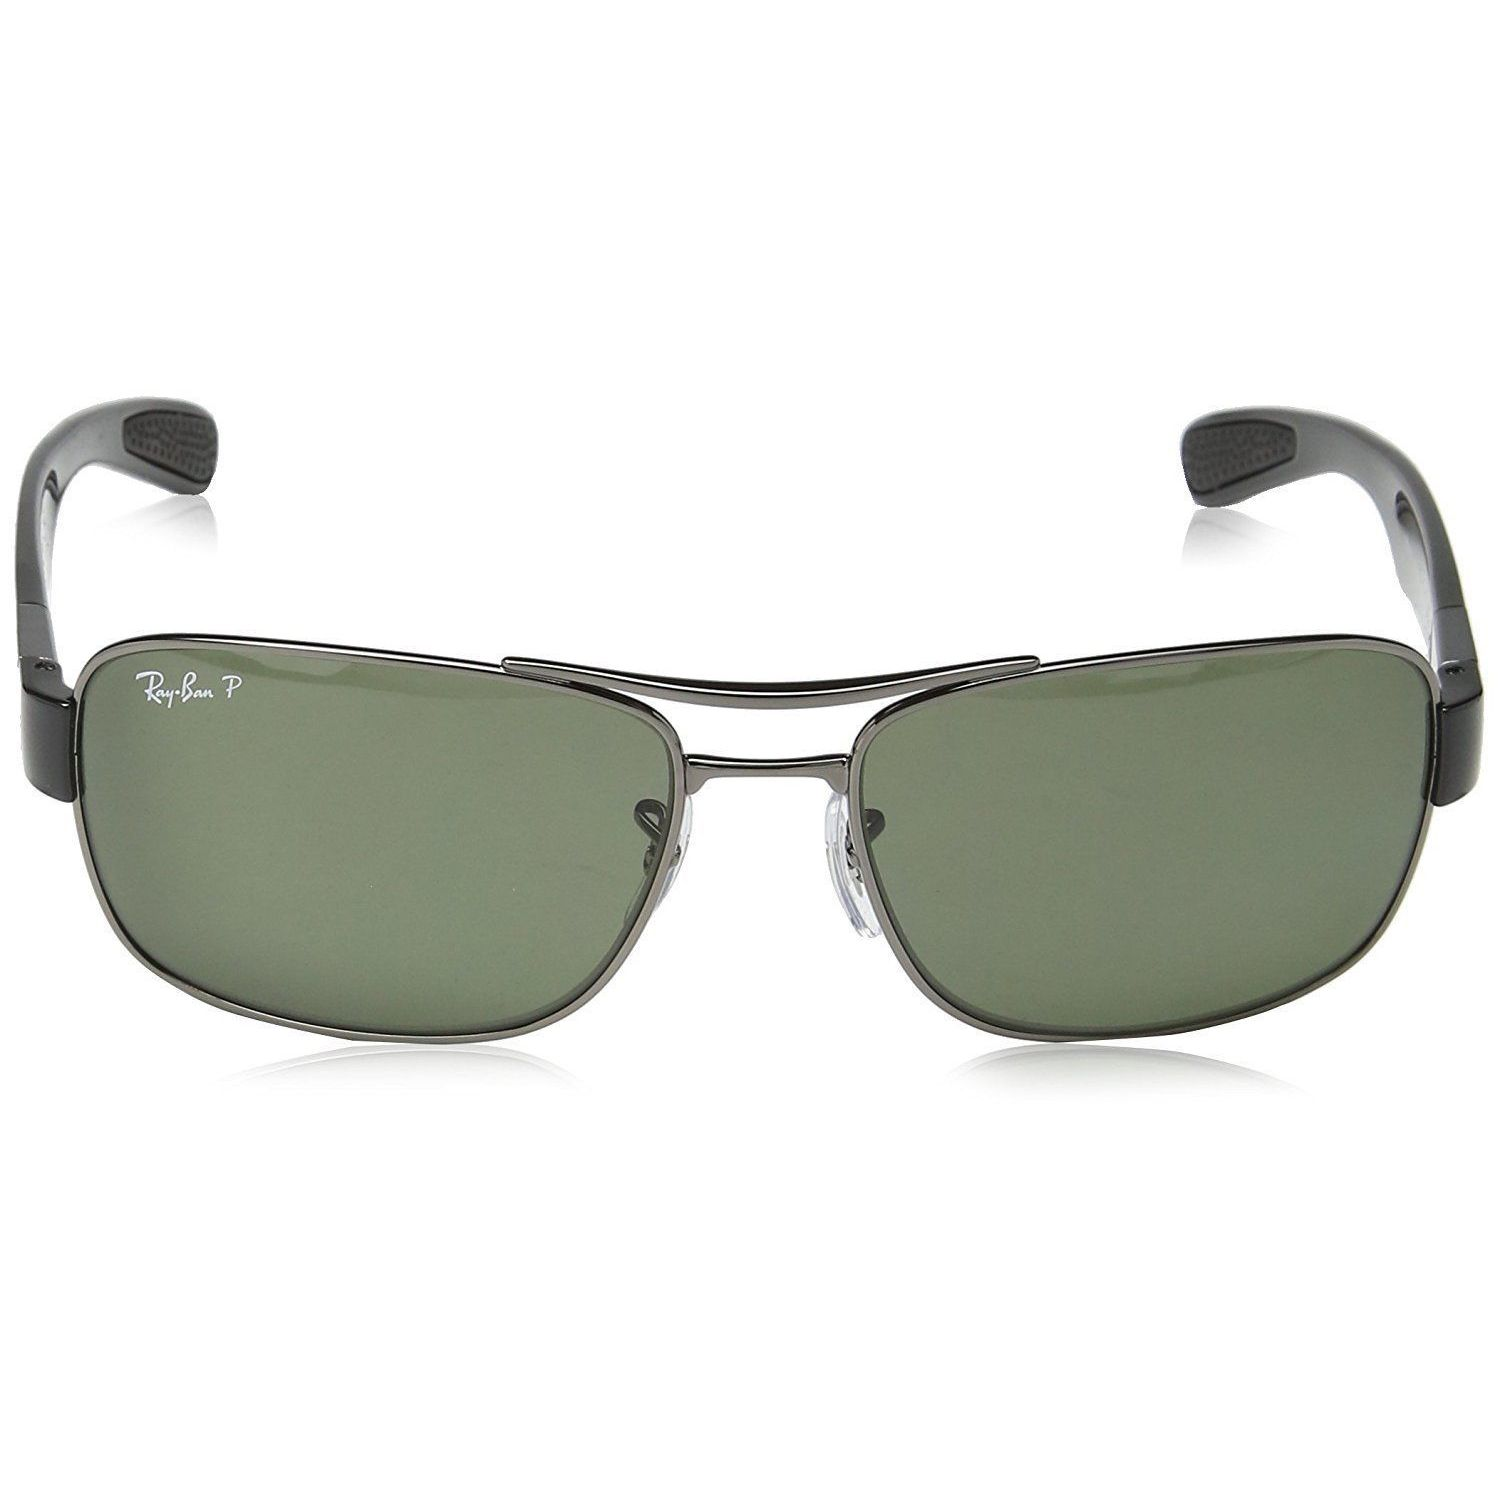 8895ae0cd34 Shop Ray-Ban RB3522 004 9A Men s Gunmetal Frame Polarized Green Lens  Sunglasses - Free Shipping Today - Overstock - 15079483